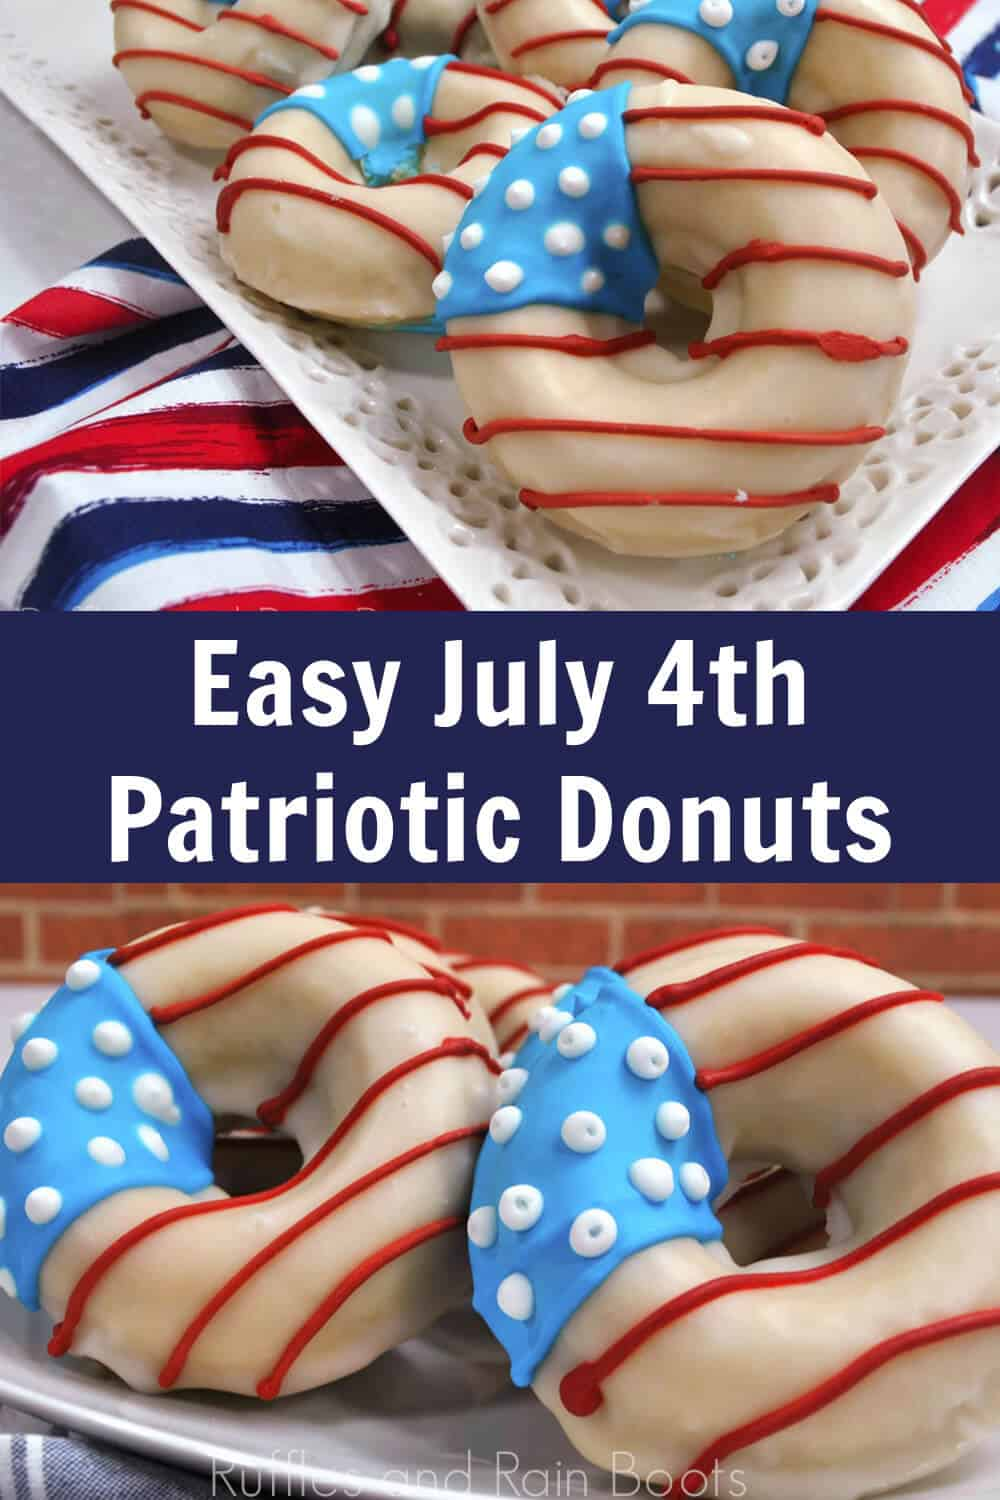 photo collage of easy july 4th patriotic donuts with text which reads easy july 4th patriotic donuts